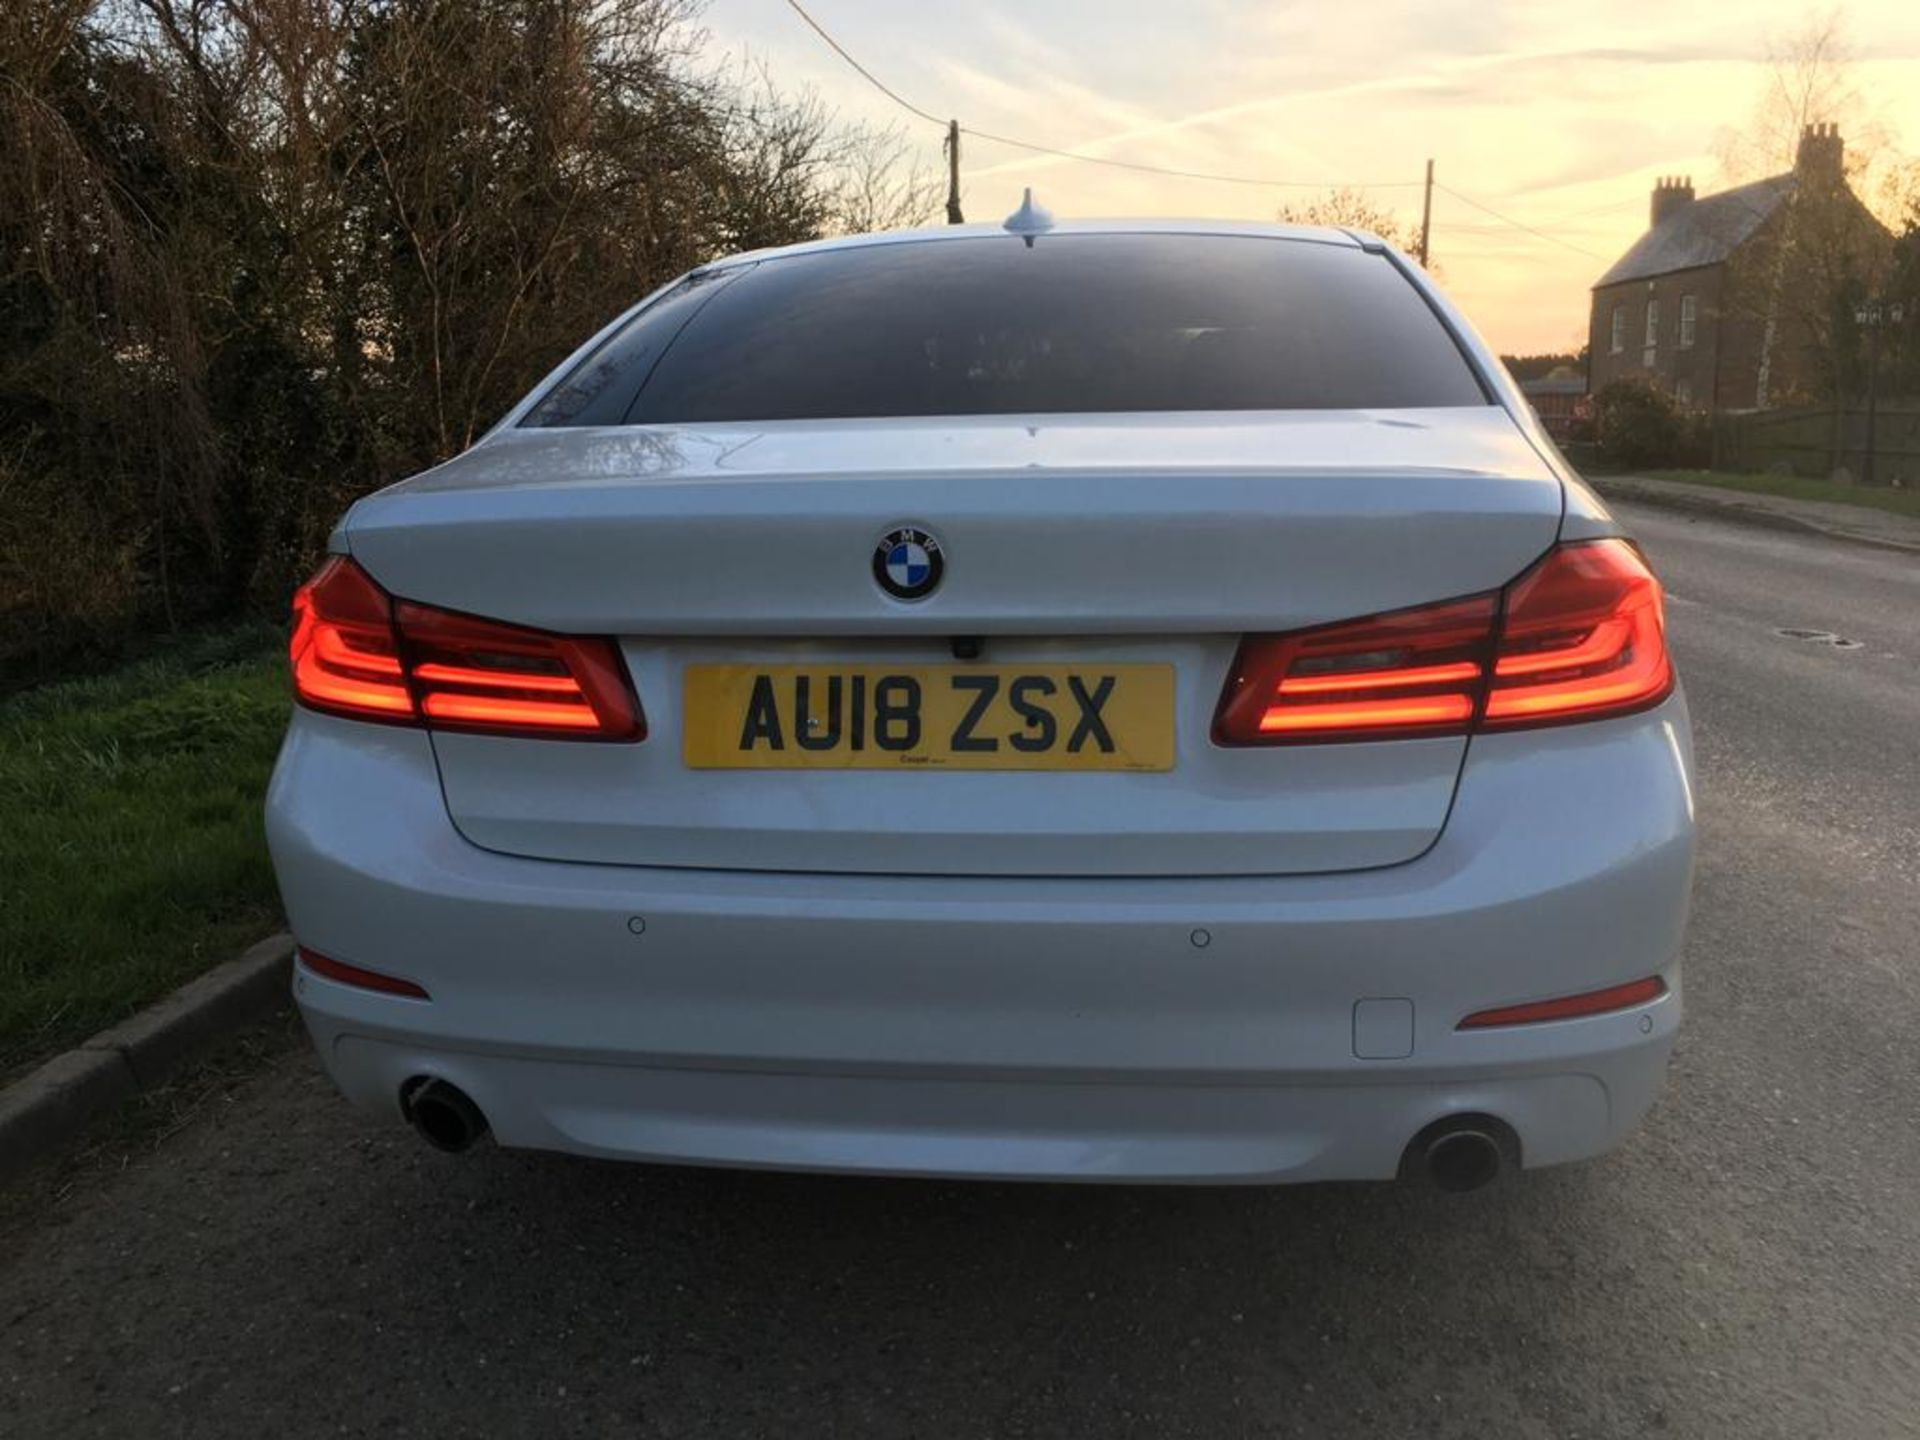 2018 BMW 530E 2.0 SE HYBIRD SALOON AUTOMATIC - Image 8 of 34